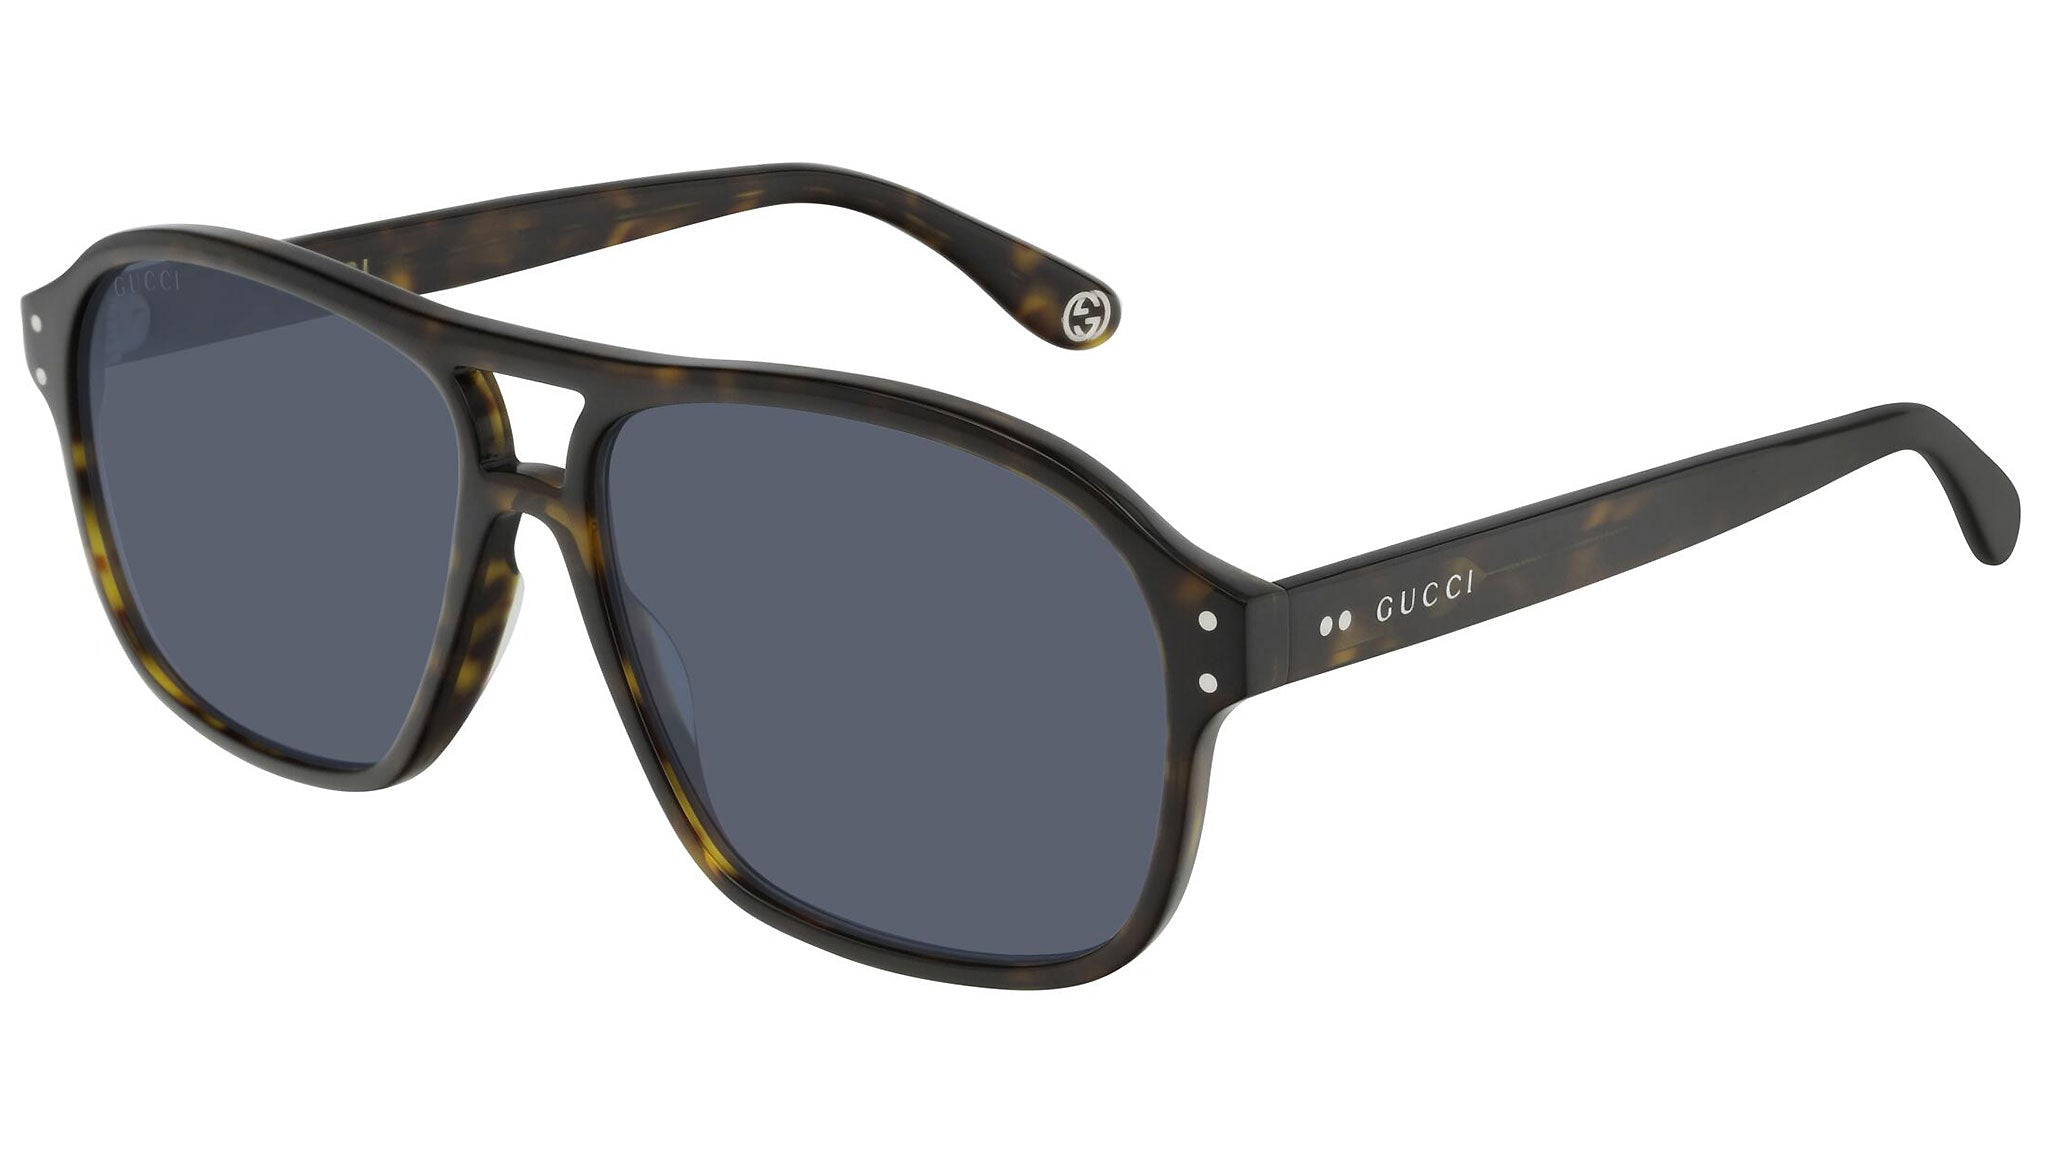 GG0475S dark havana and grey